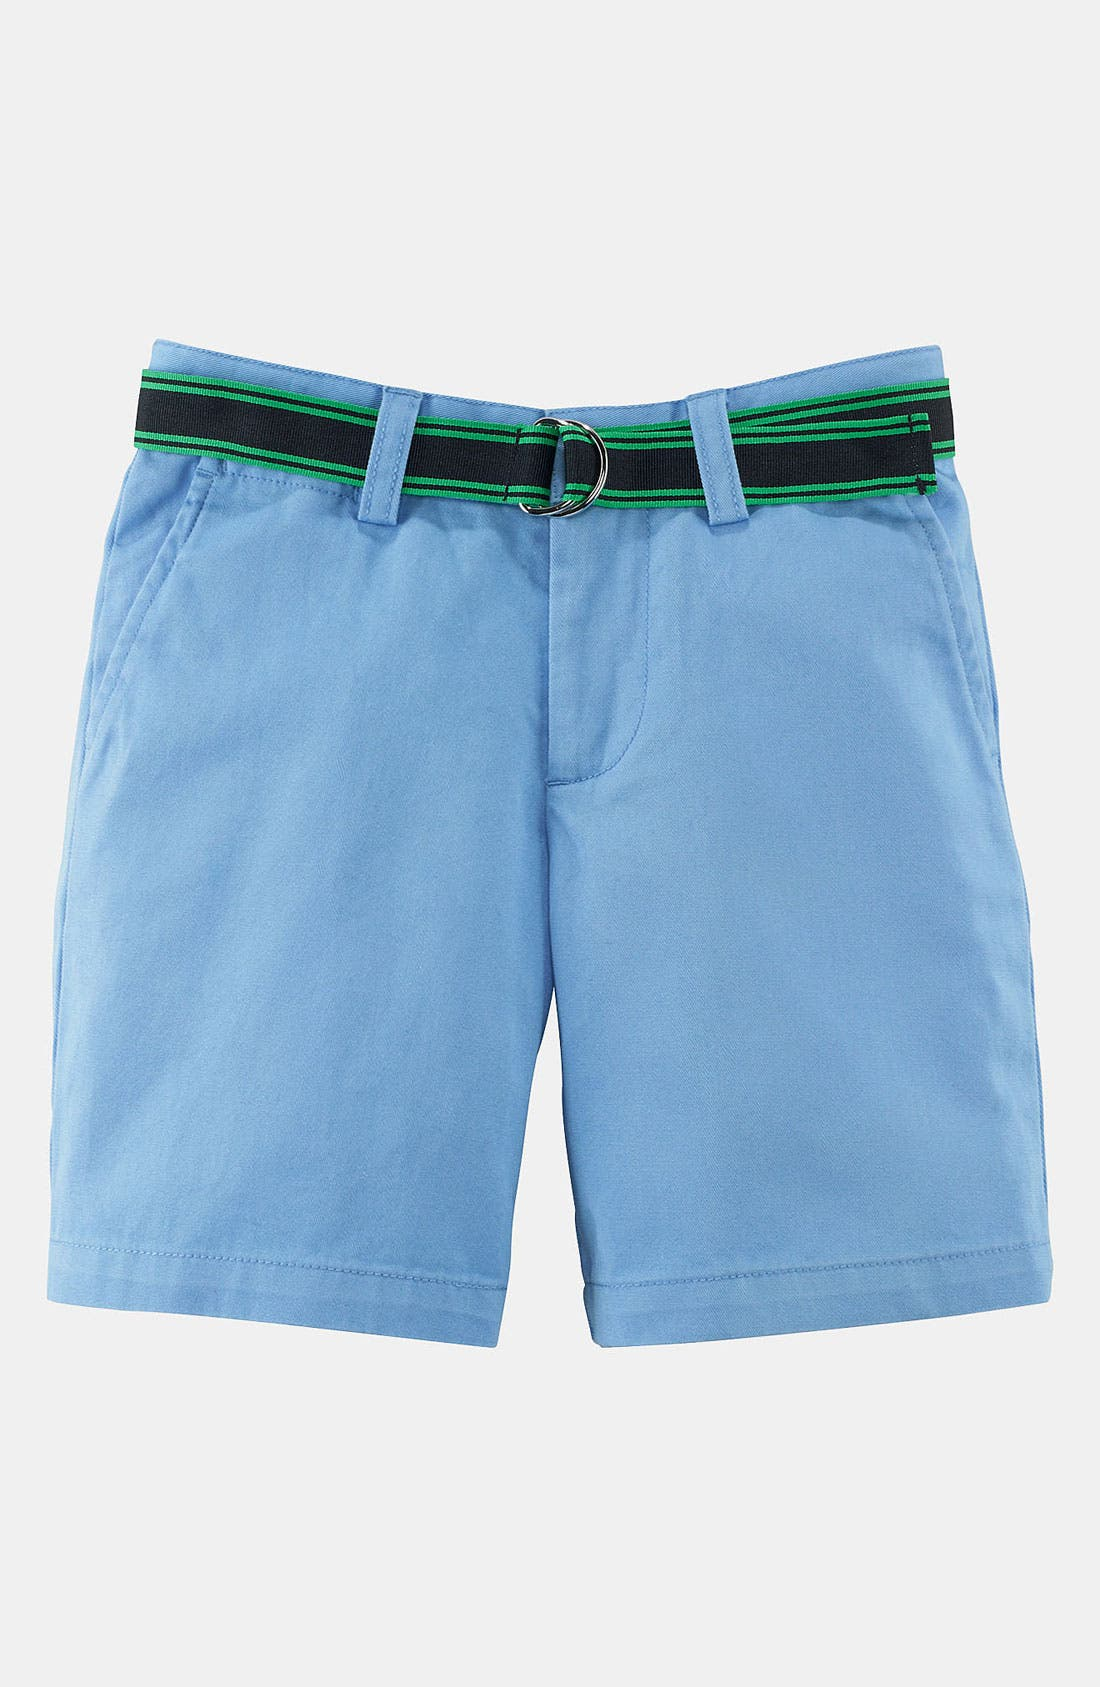 Alternate Image 1 Selected - Ralph Lauren Shorts (Toddler)